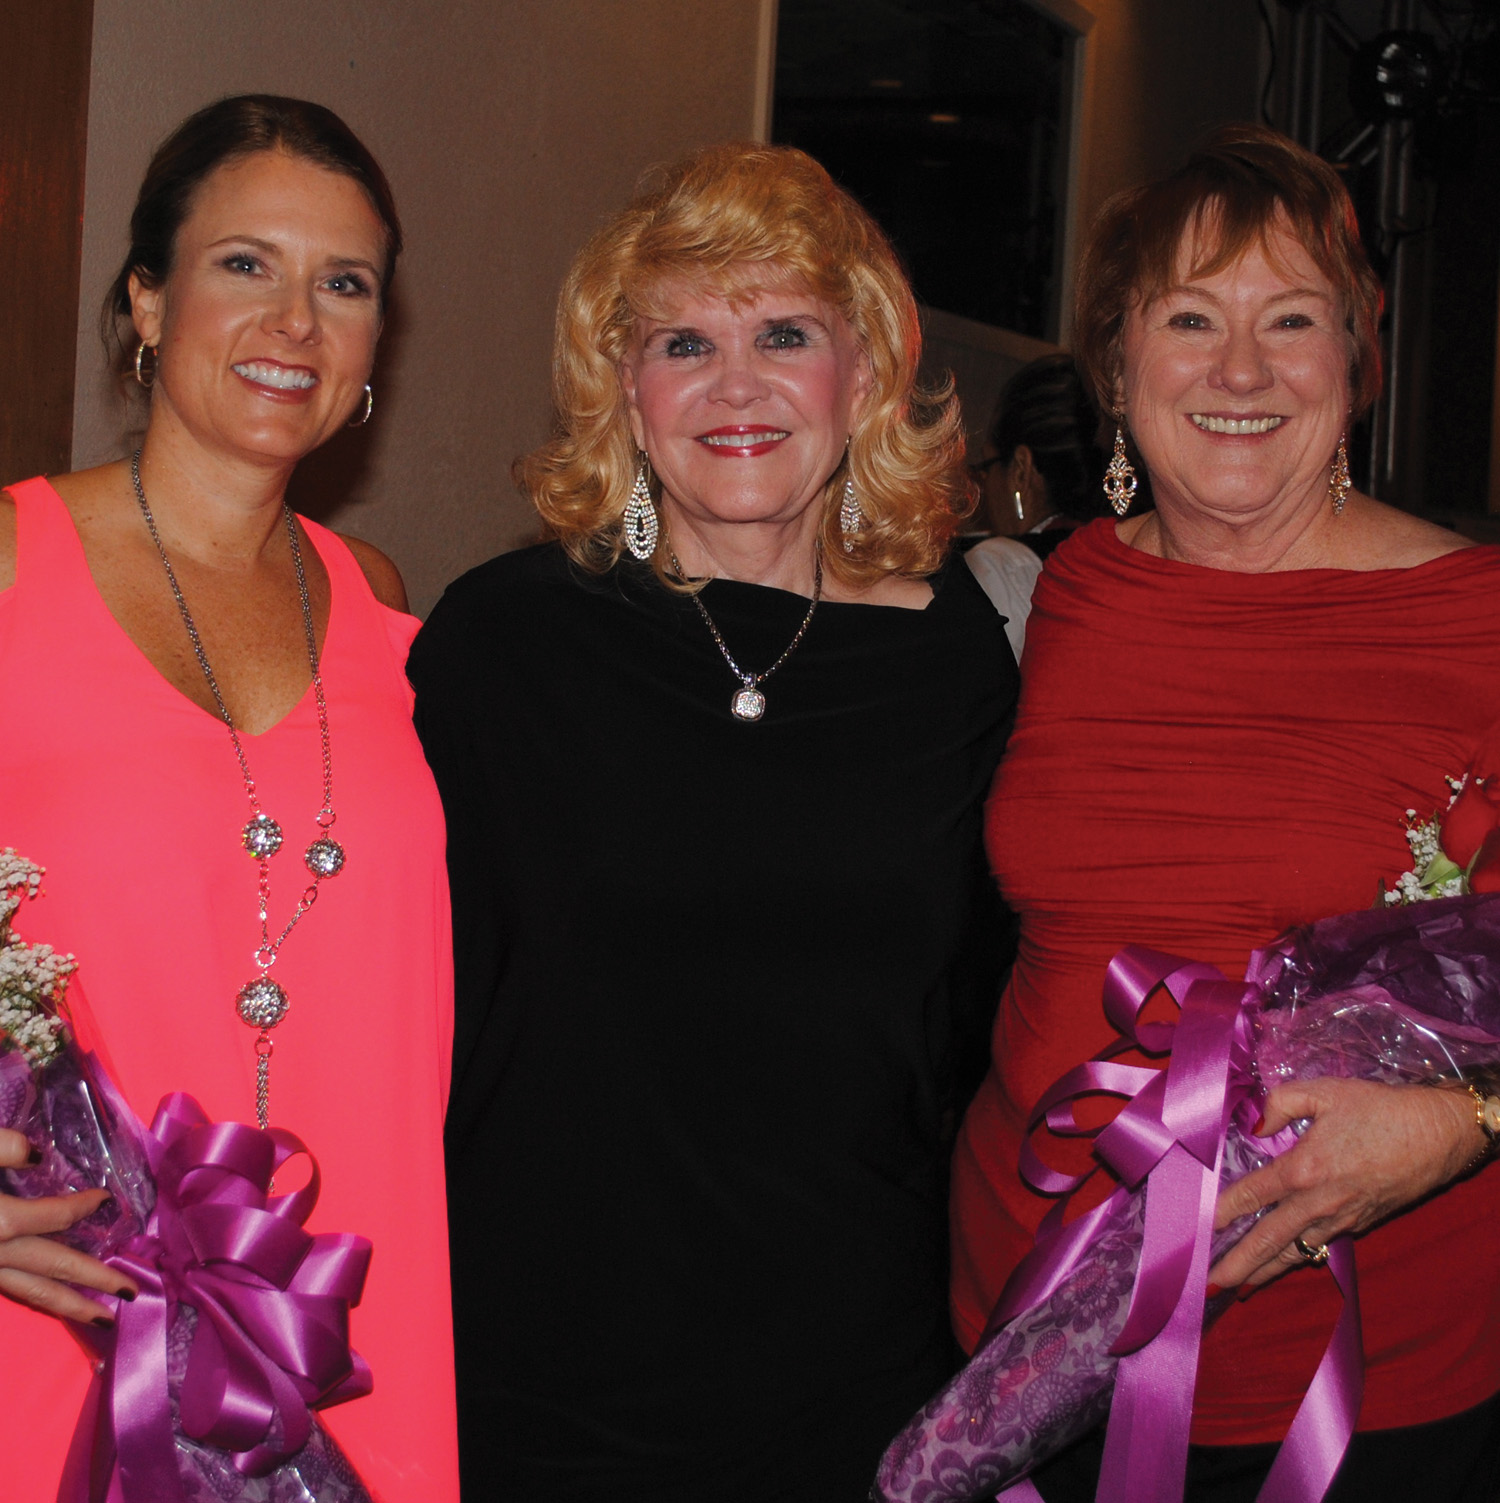 Clear Lake Area Panhellenic President Kay Lee Benoit, center, presents bouquets of roses to Chairman Ellen King, left, and Co-Chairman Karen Weber to thank them for all their hard work putting the fall fashion show luncheon together.